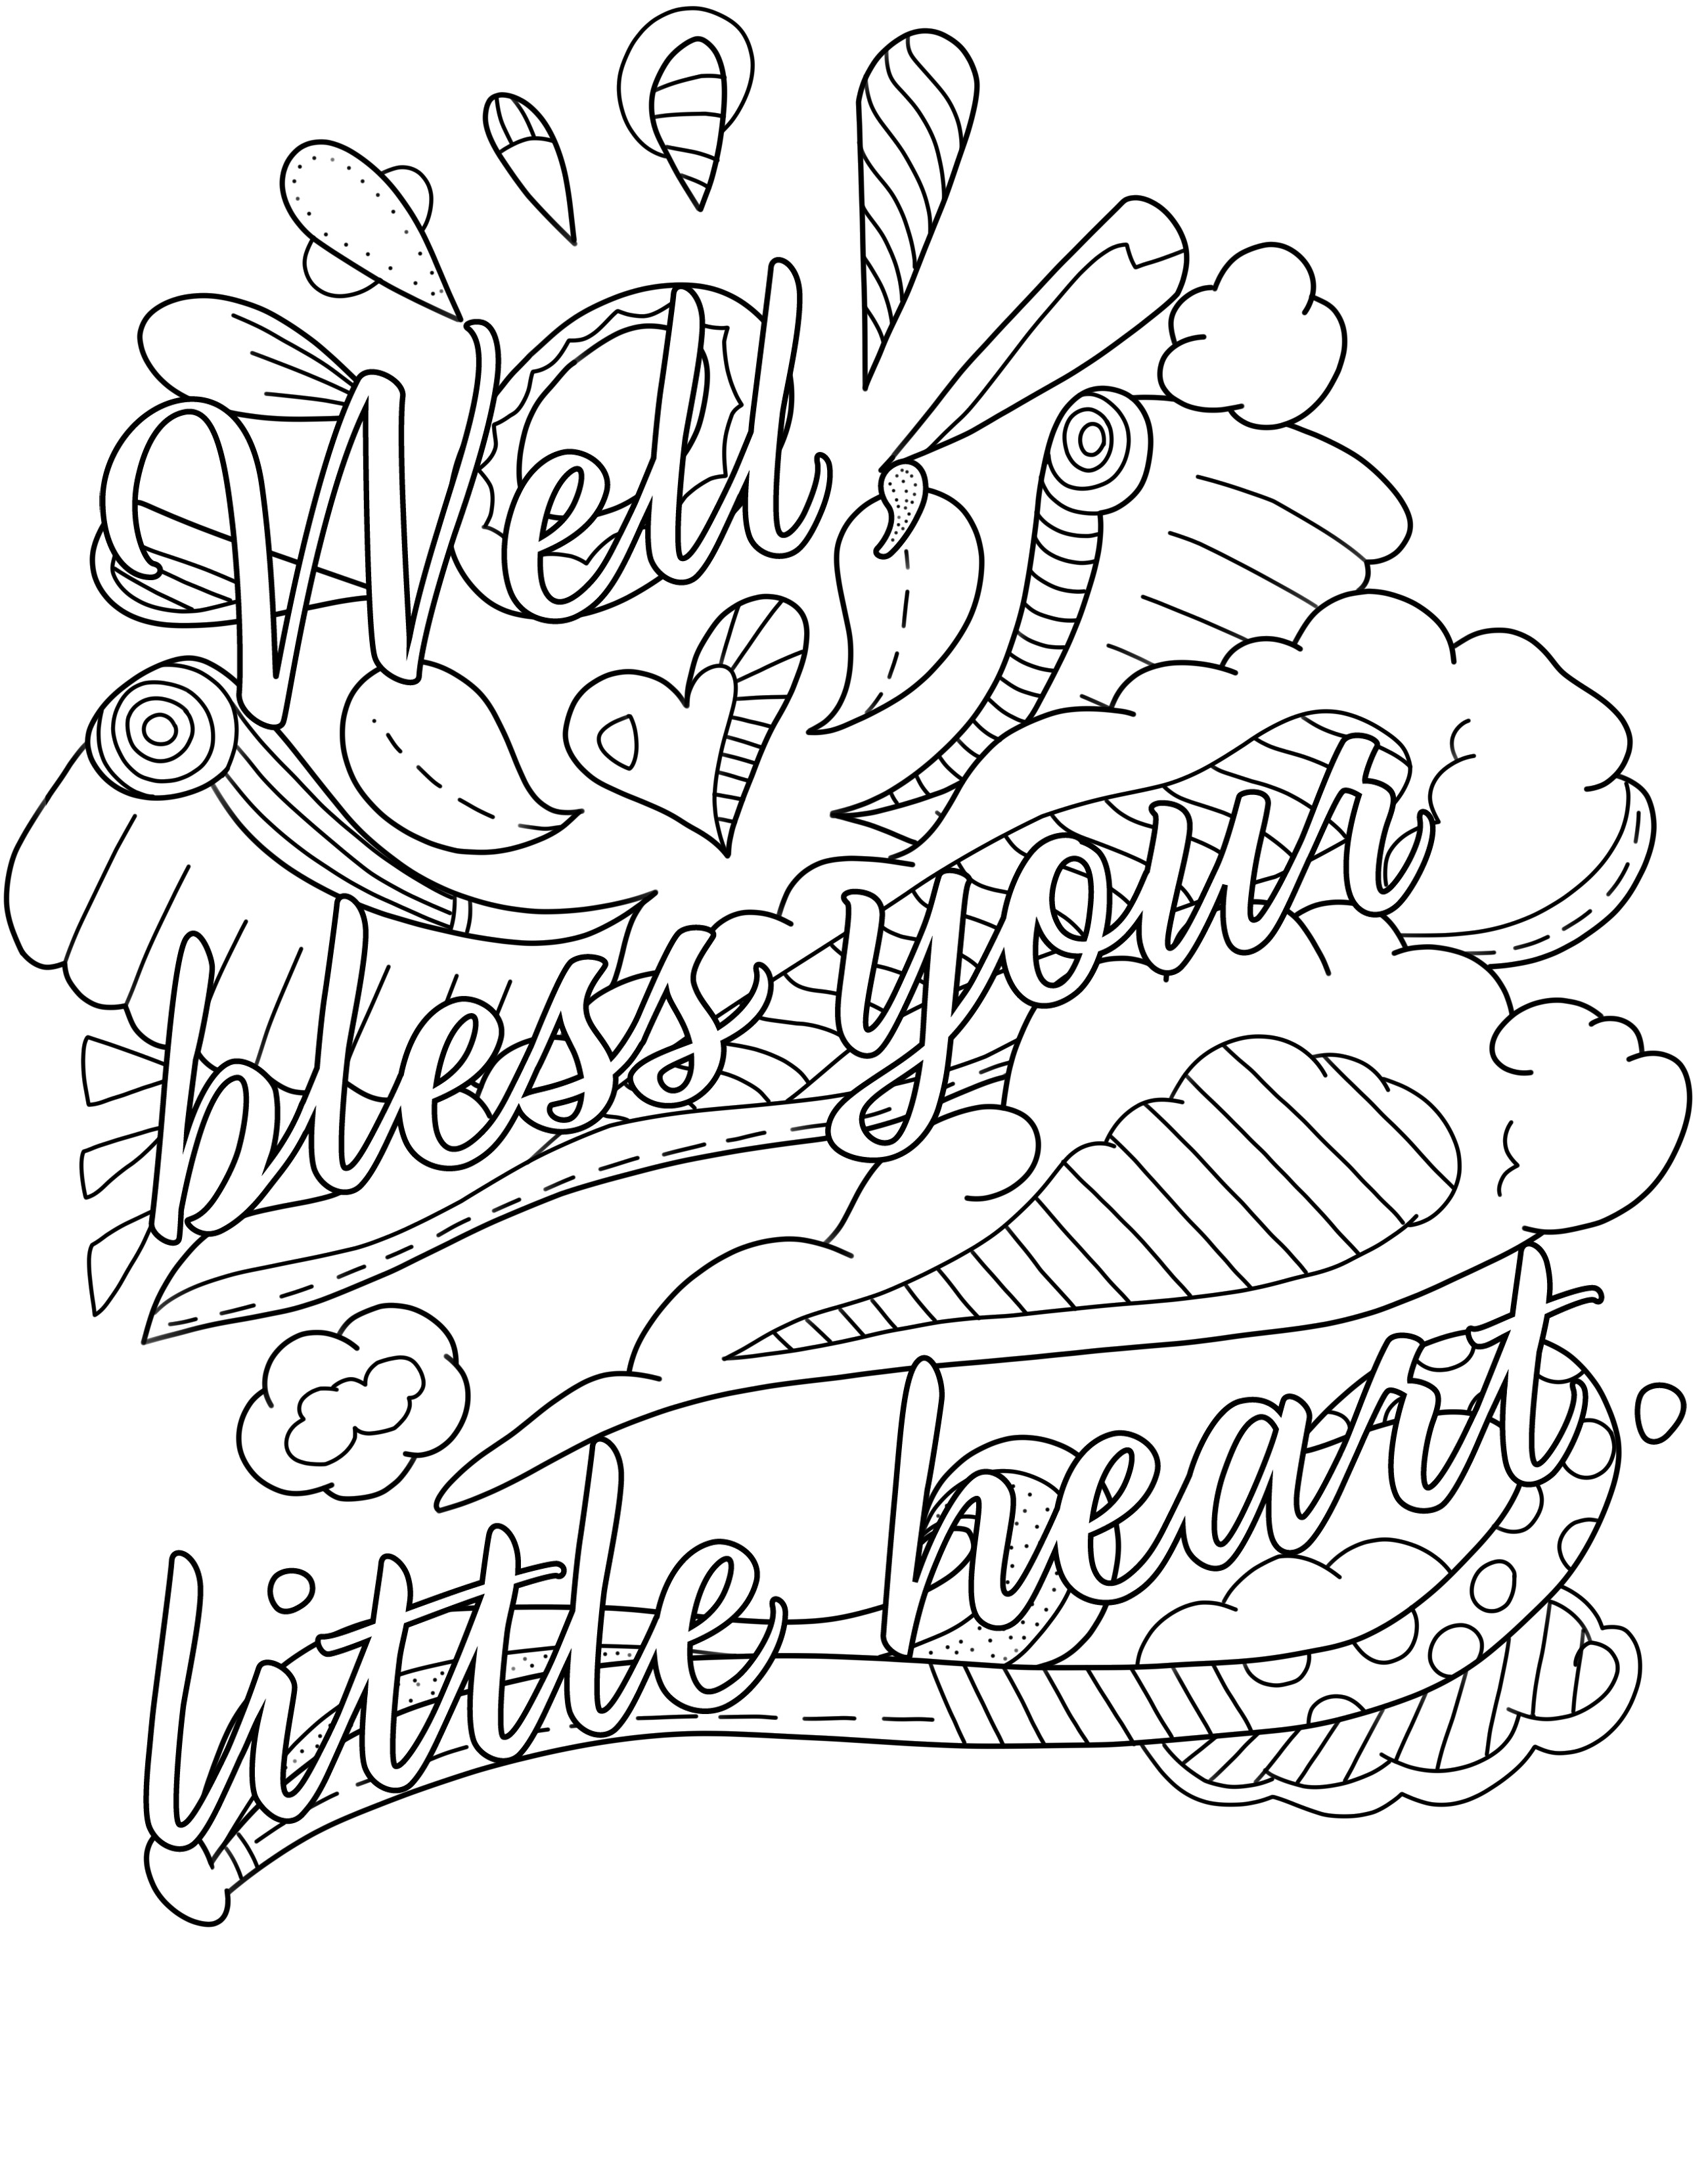 2600x3300 To Swear Word Coloring Pages Printable Fototo Me Stunning